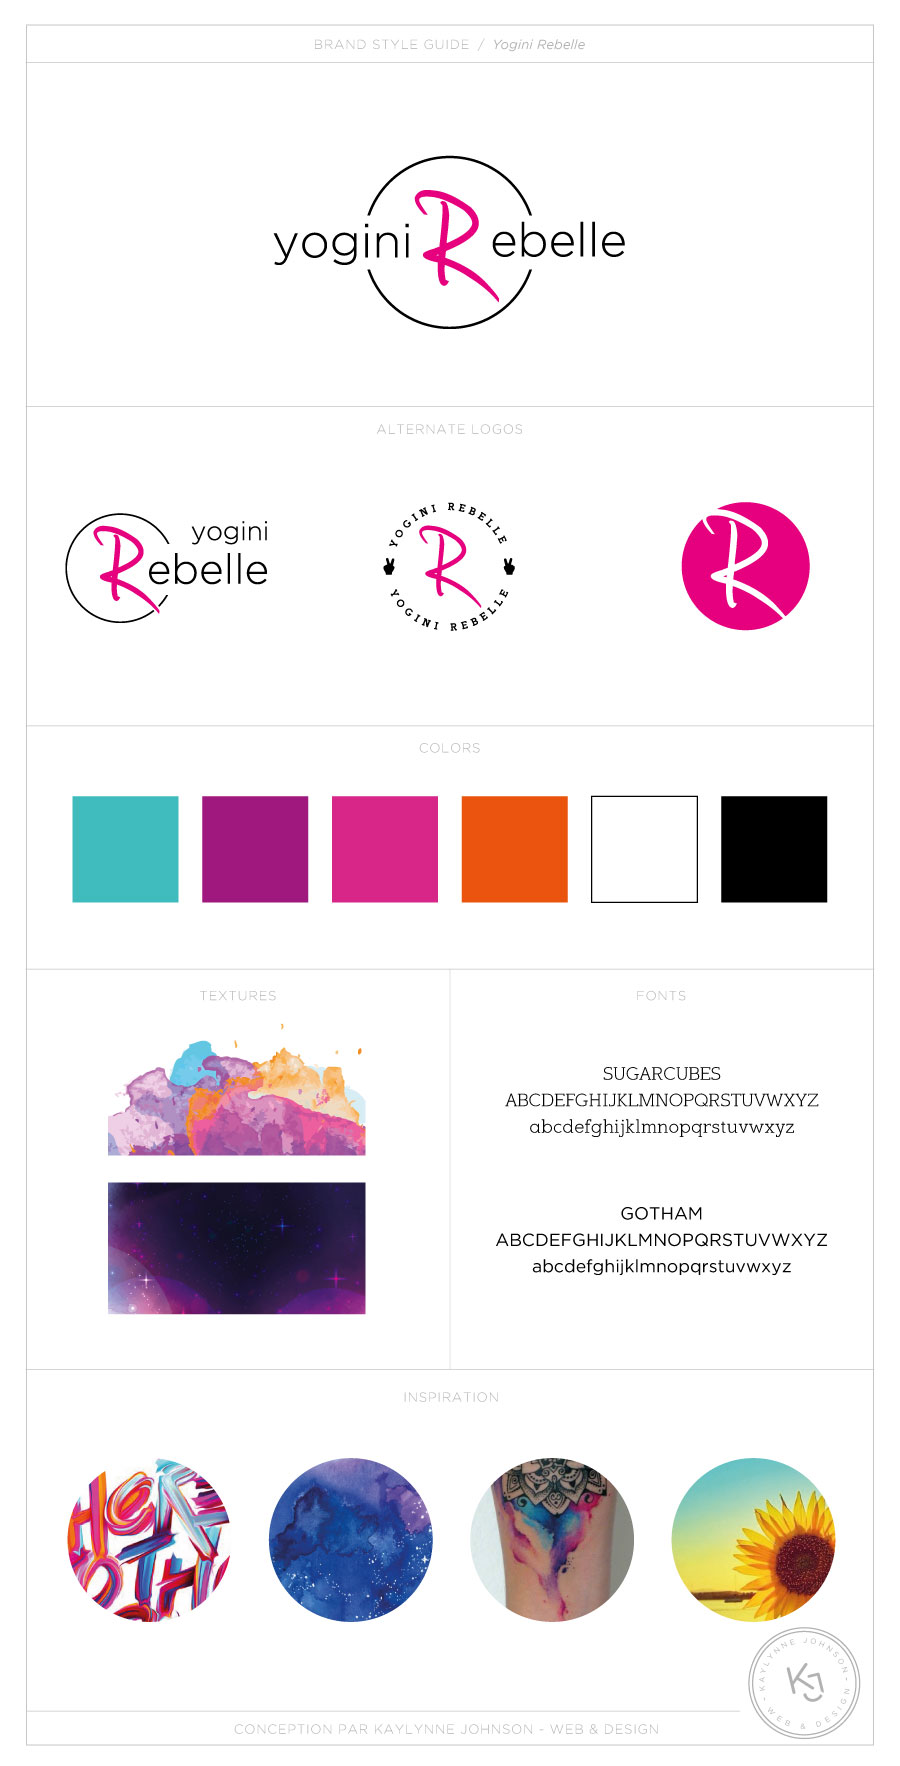 Yogini Rebelle - Branding | Design by Kaylynne Johnson - web & design | www.kaylynnejohnson.com